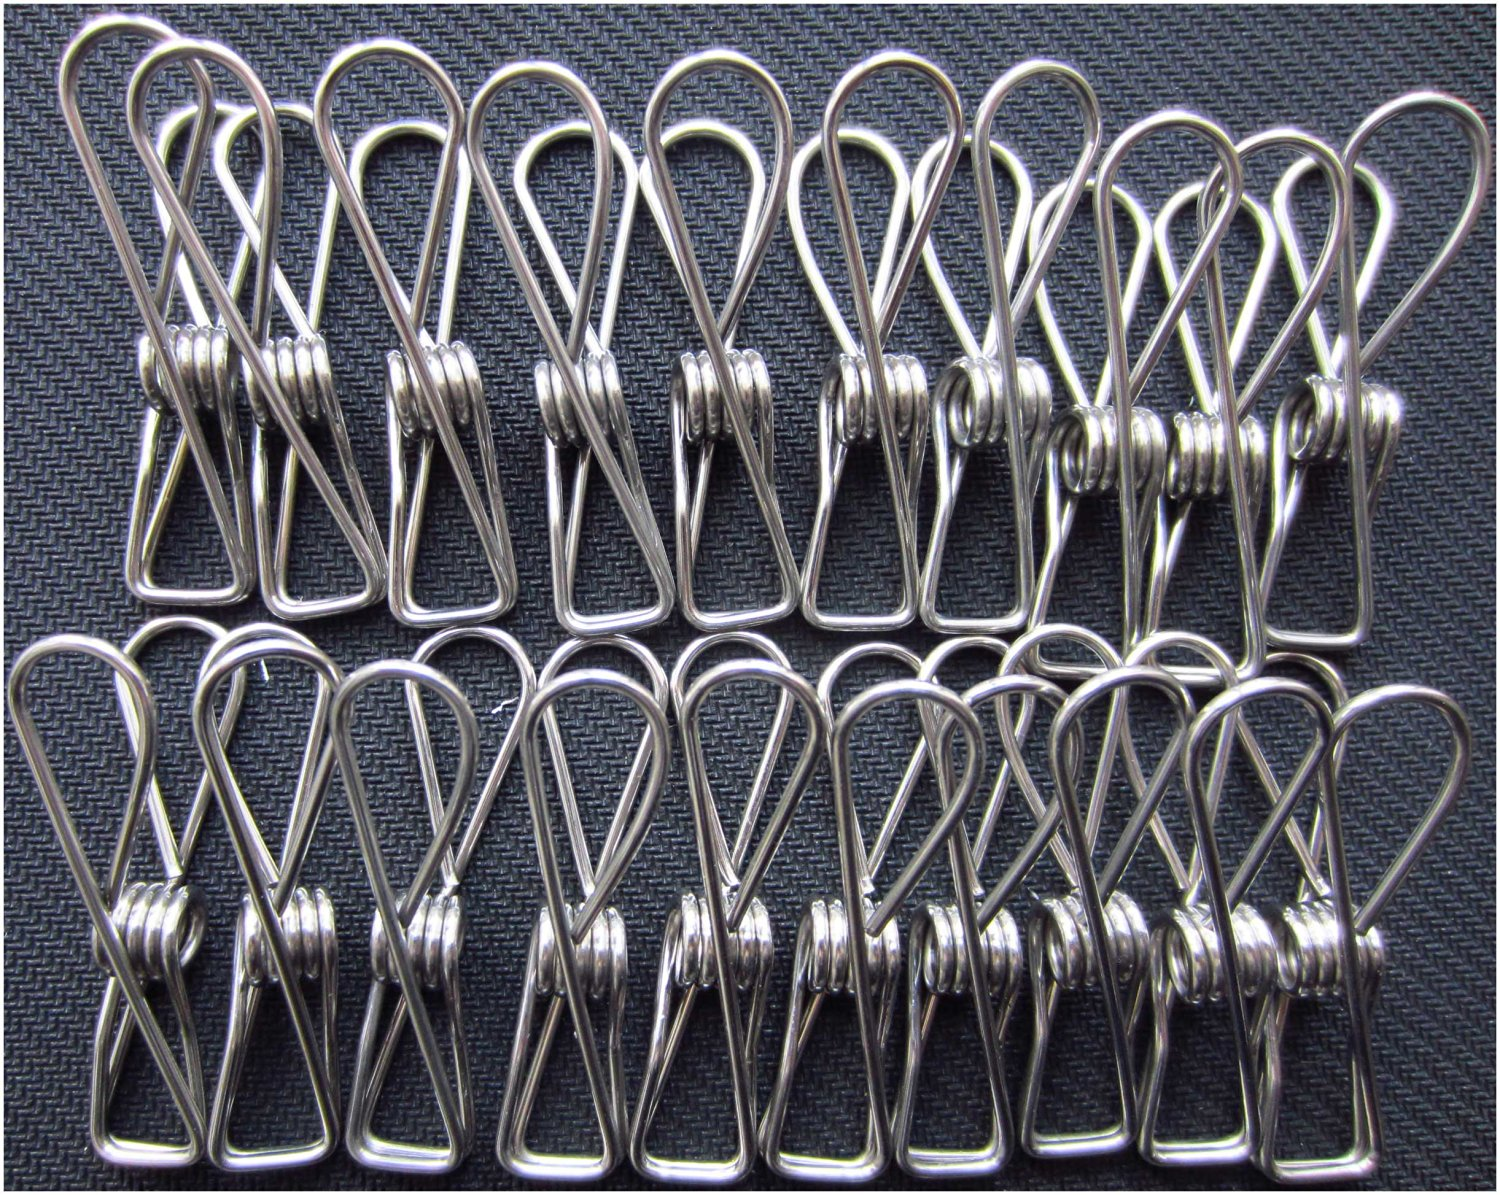 Cheap 3m Wire Clips, find 3m Wire Clips deals on line at Alibaba.com